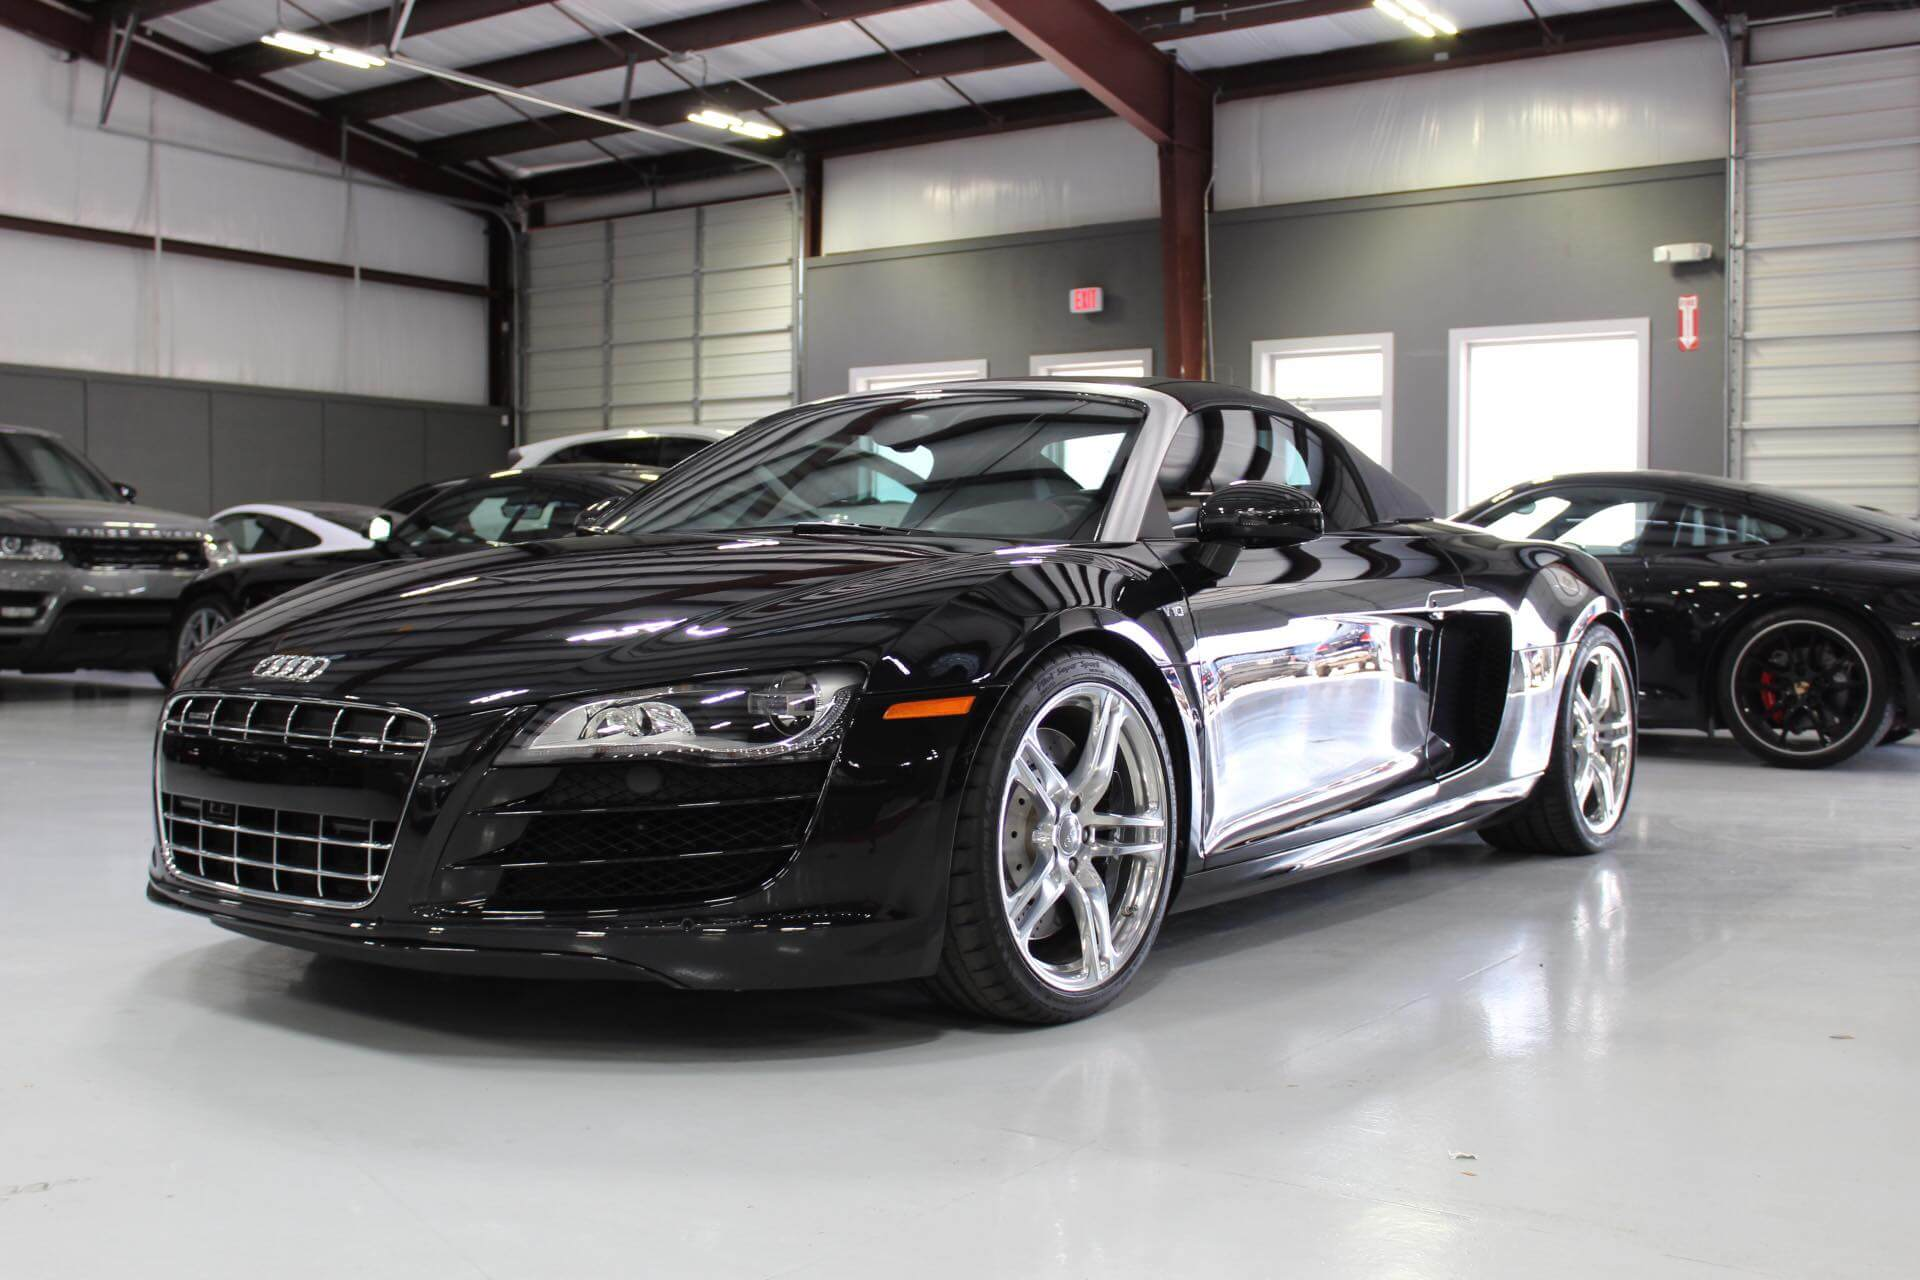 Luxury Used Car Trade-In in Austin Texas